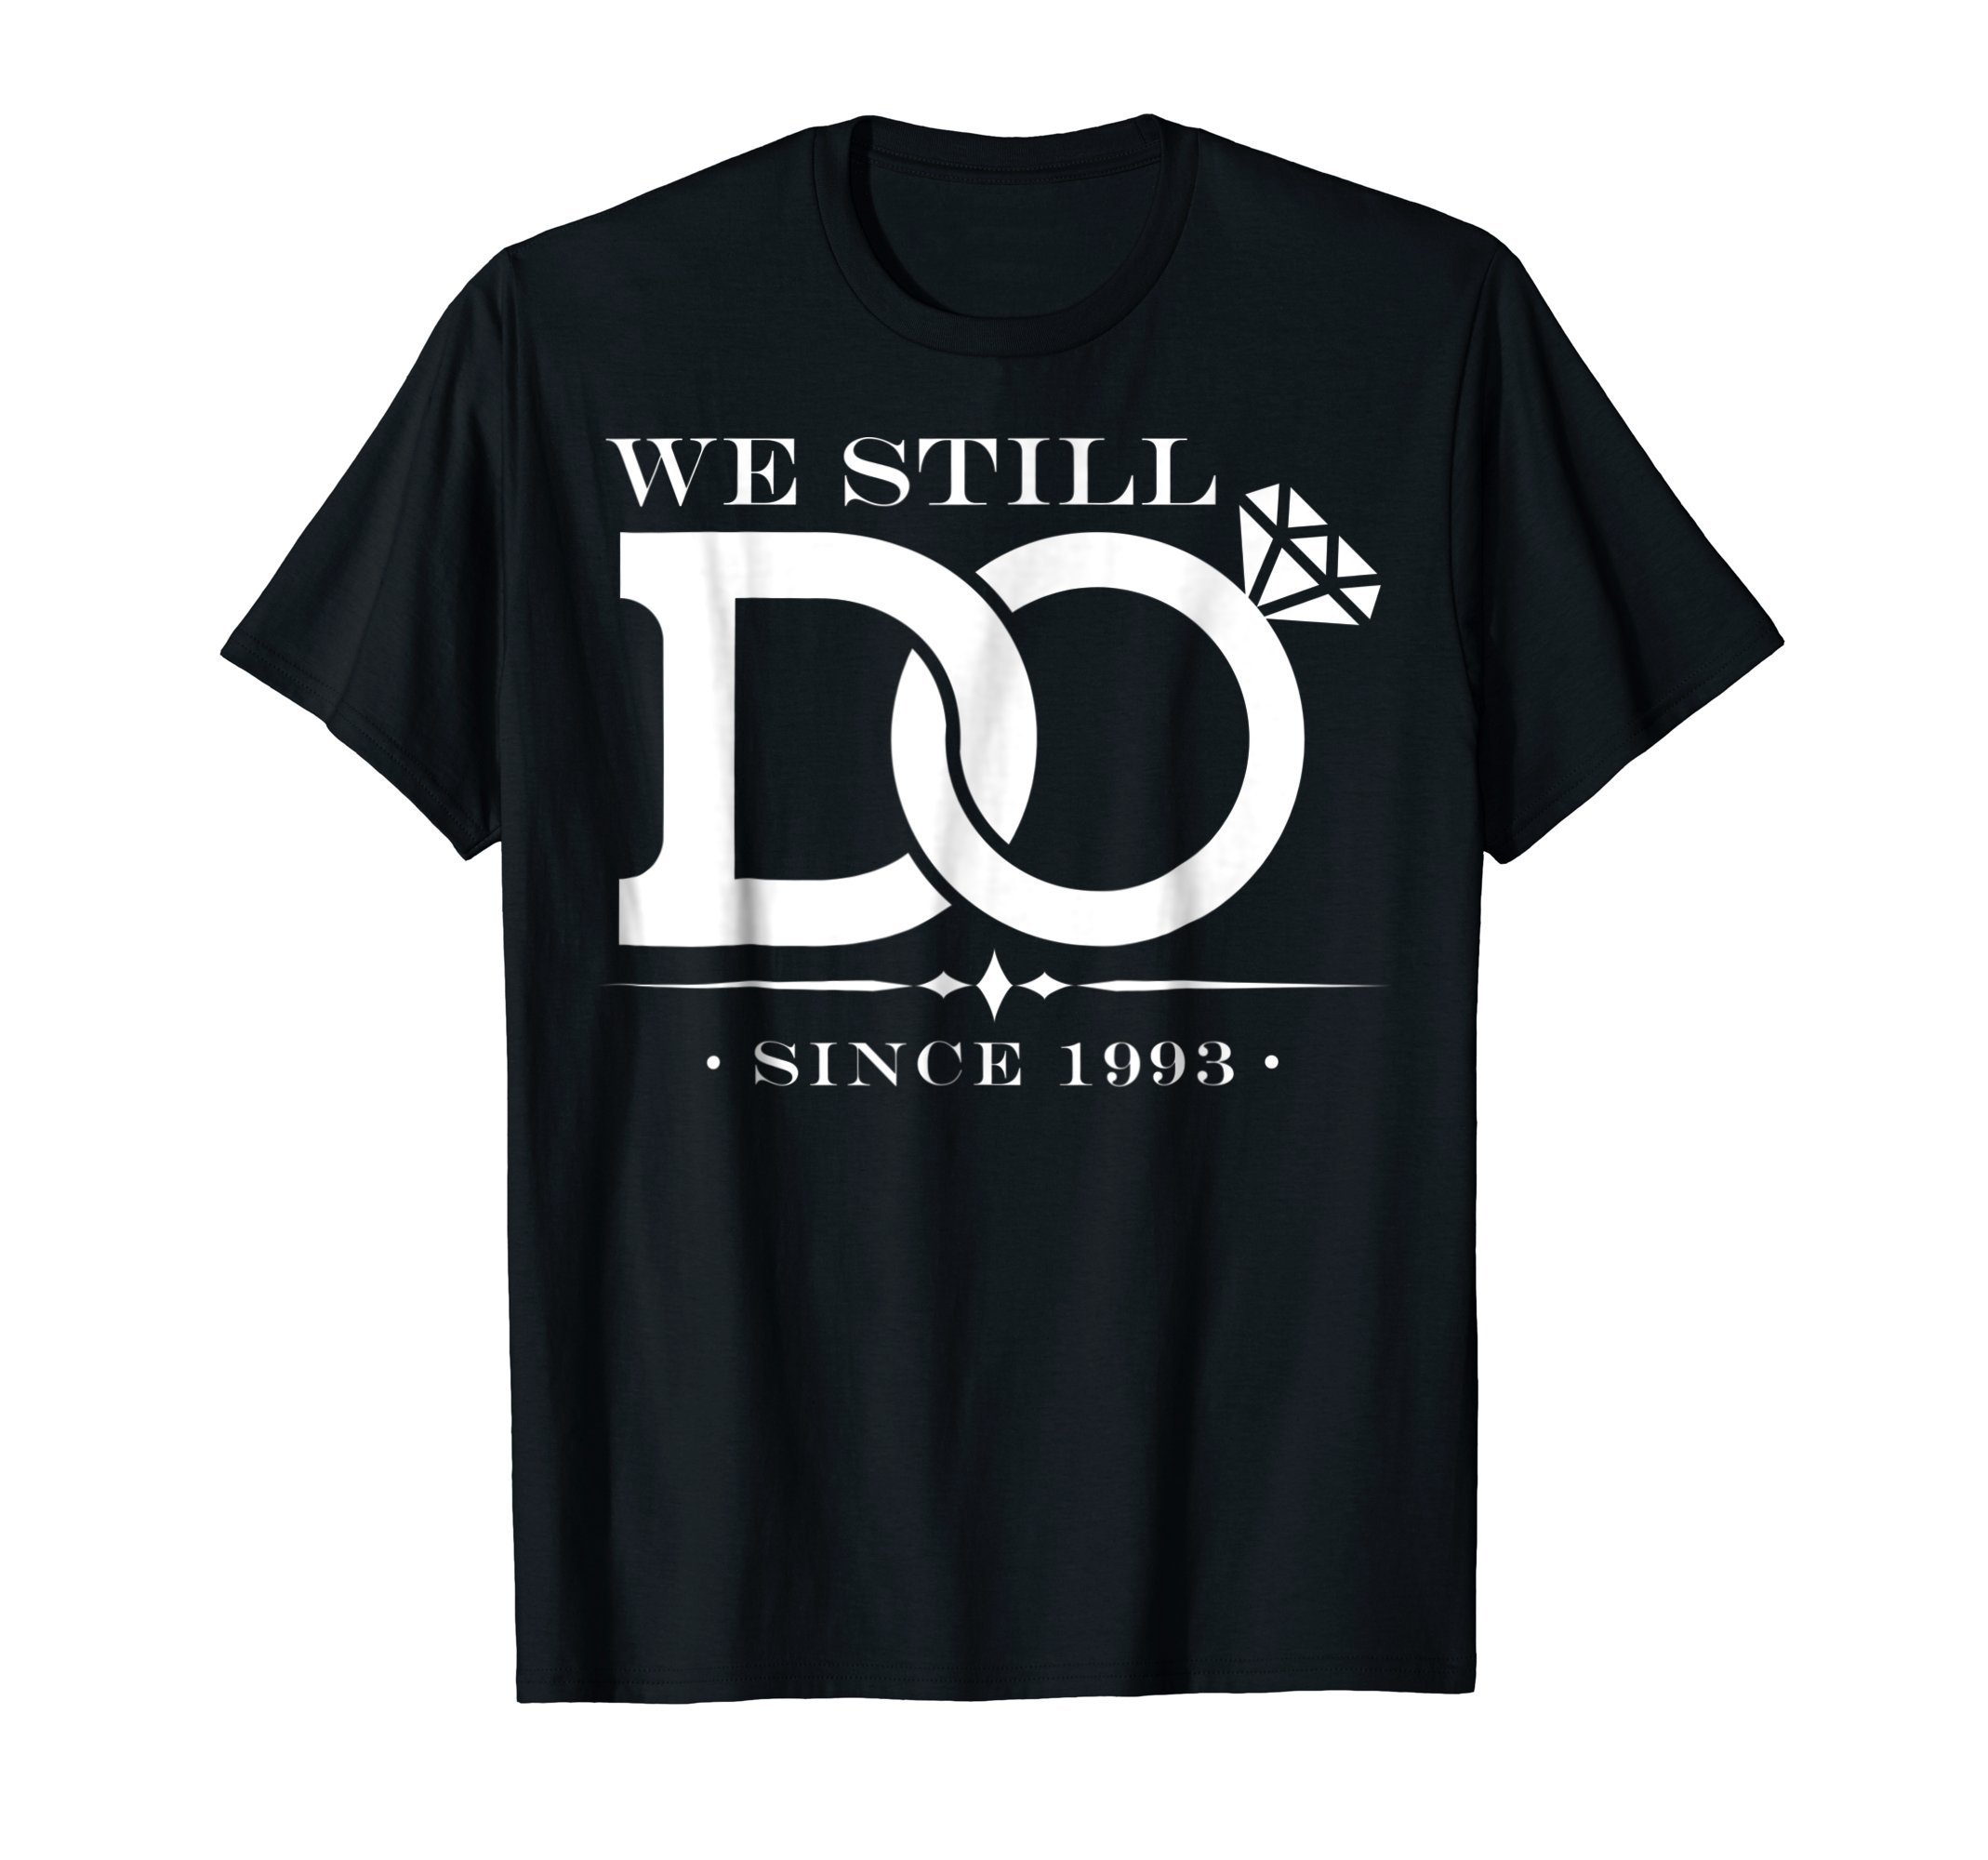 We Still Do Shirt Vow Renewal Silver Wedding 25 Years Gift